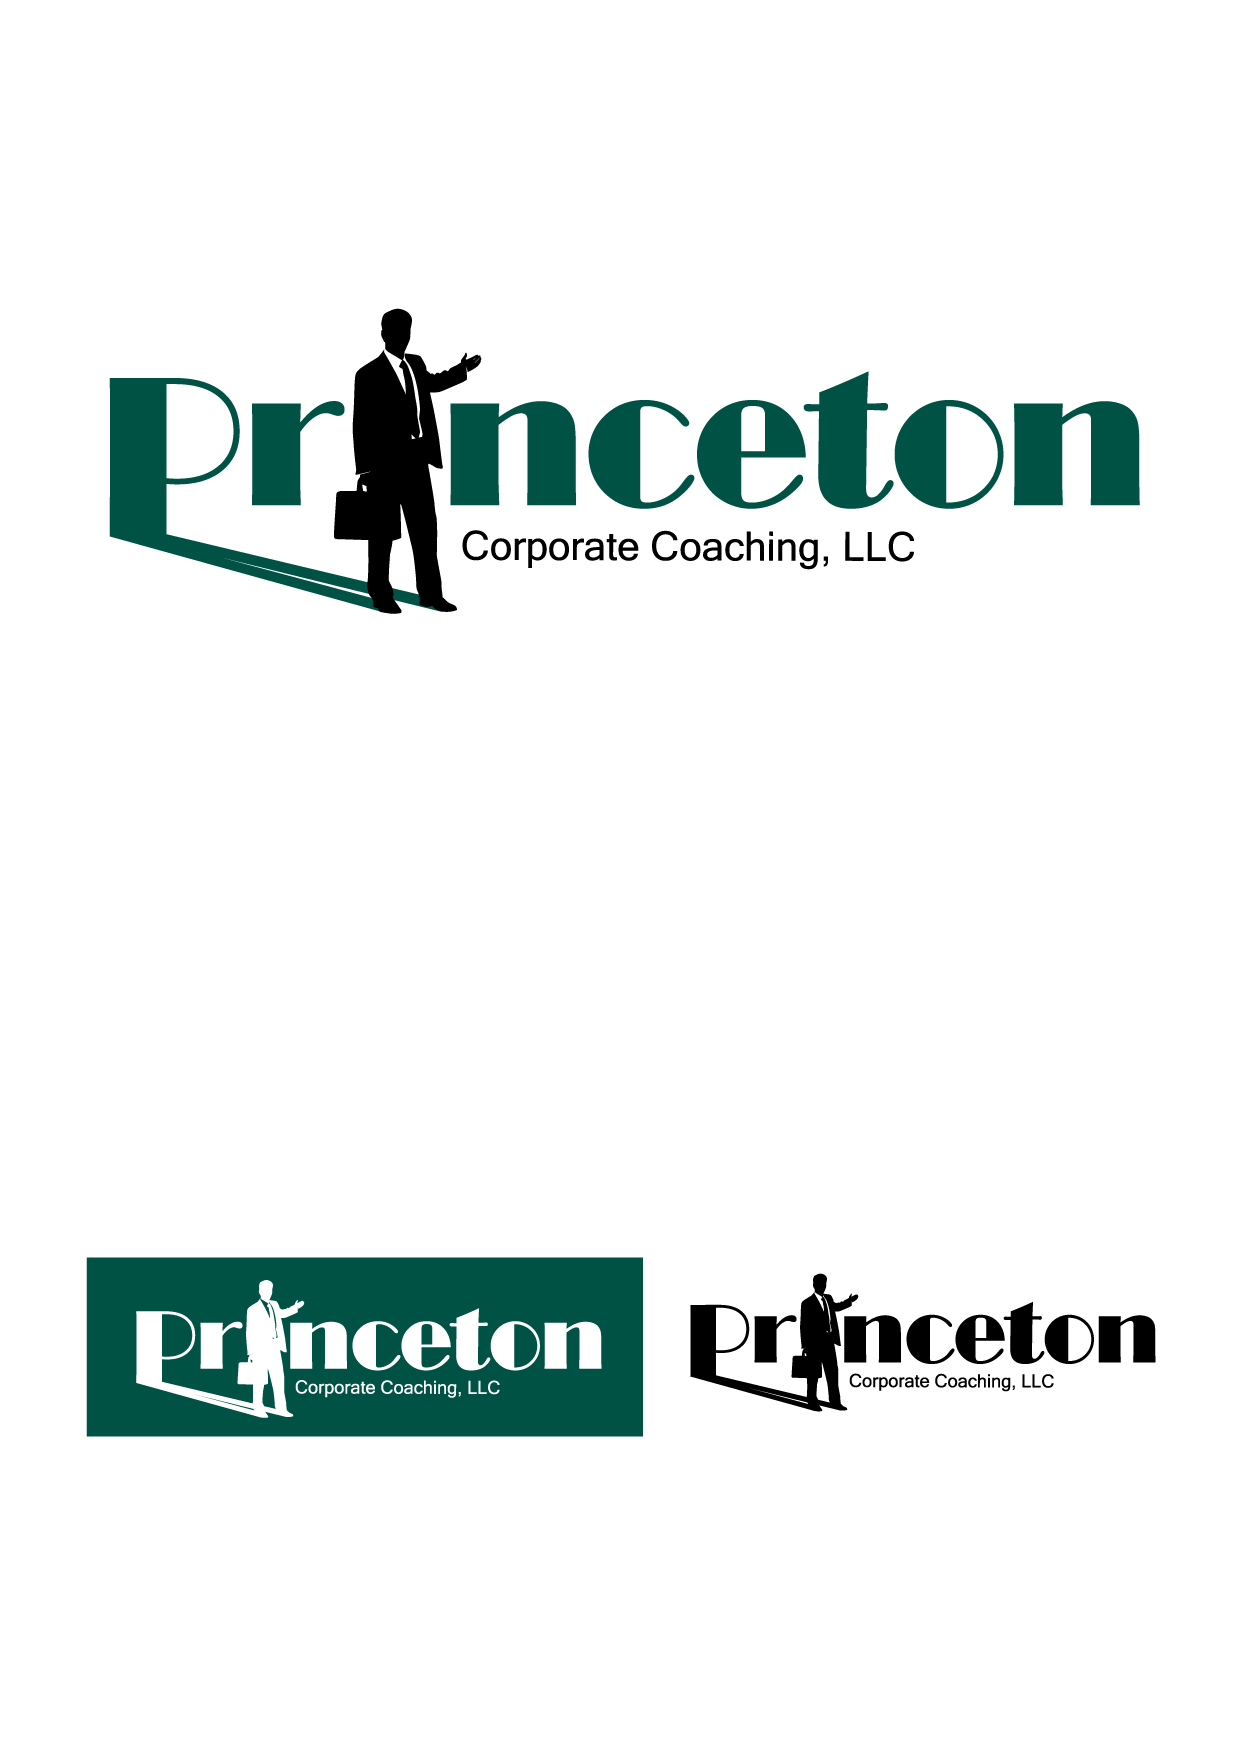 Logo Design by Wilfredo Mendoza - Entry No. 55 in the Logo Design Contest Unique Logo Design Wanted for Princeton Corporate Coaching, LLC.